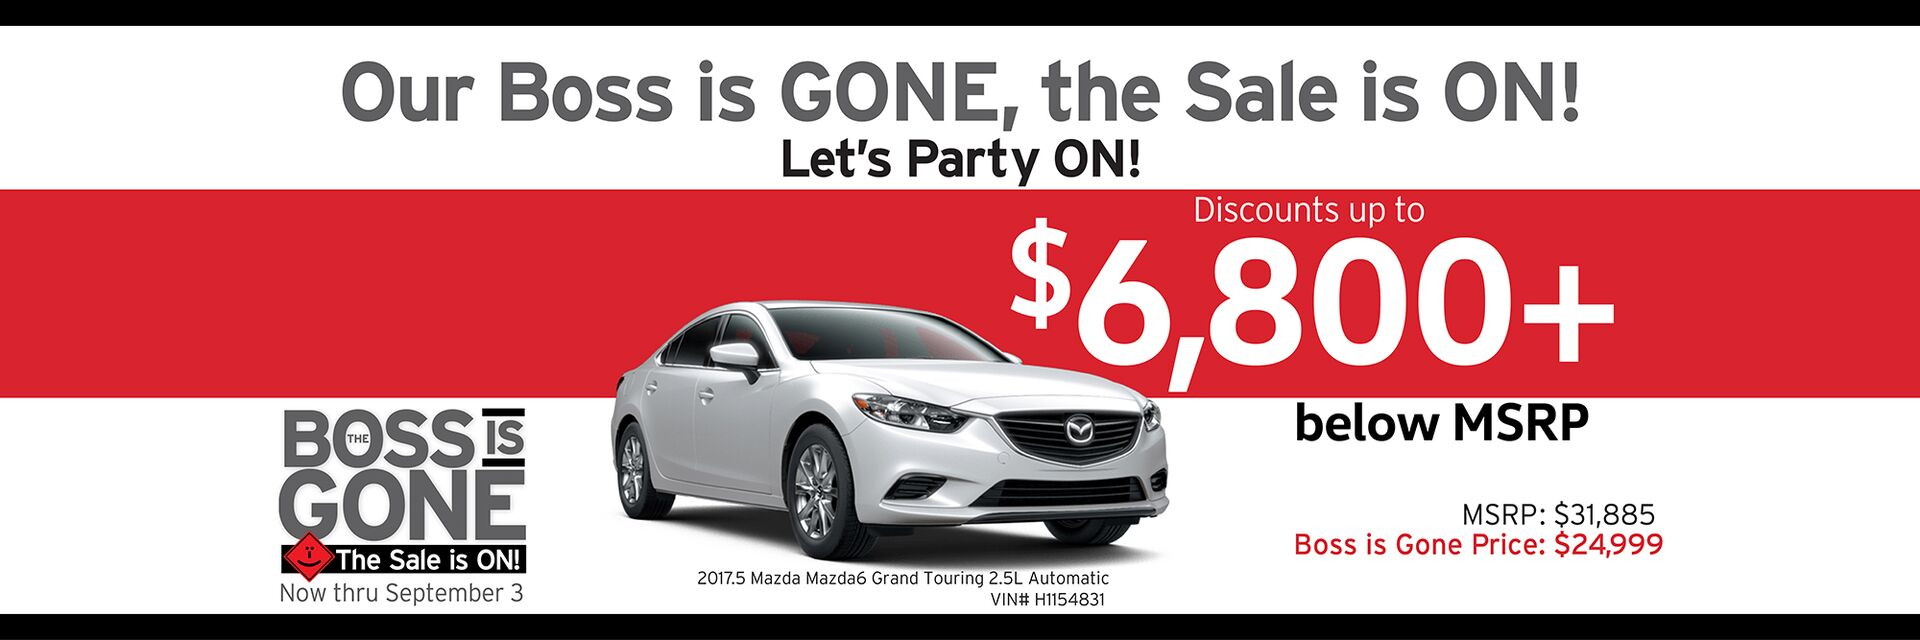 Capistrano Mazda Boss is Gone Sale - Save up to $6,800+ below MSRP